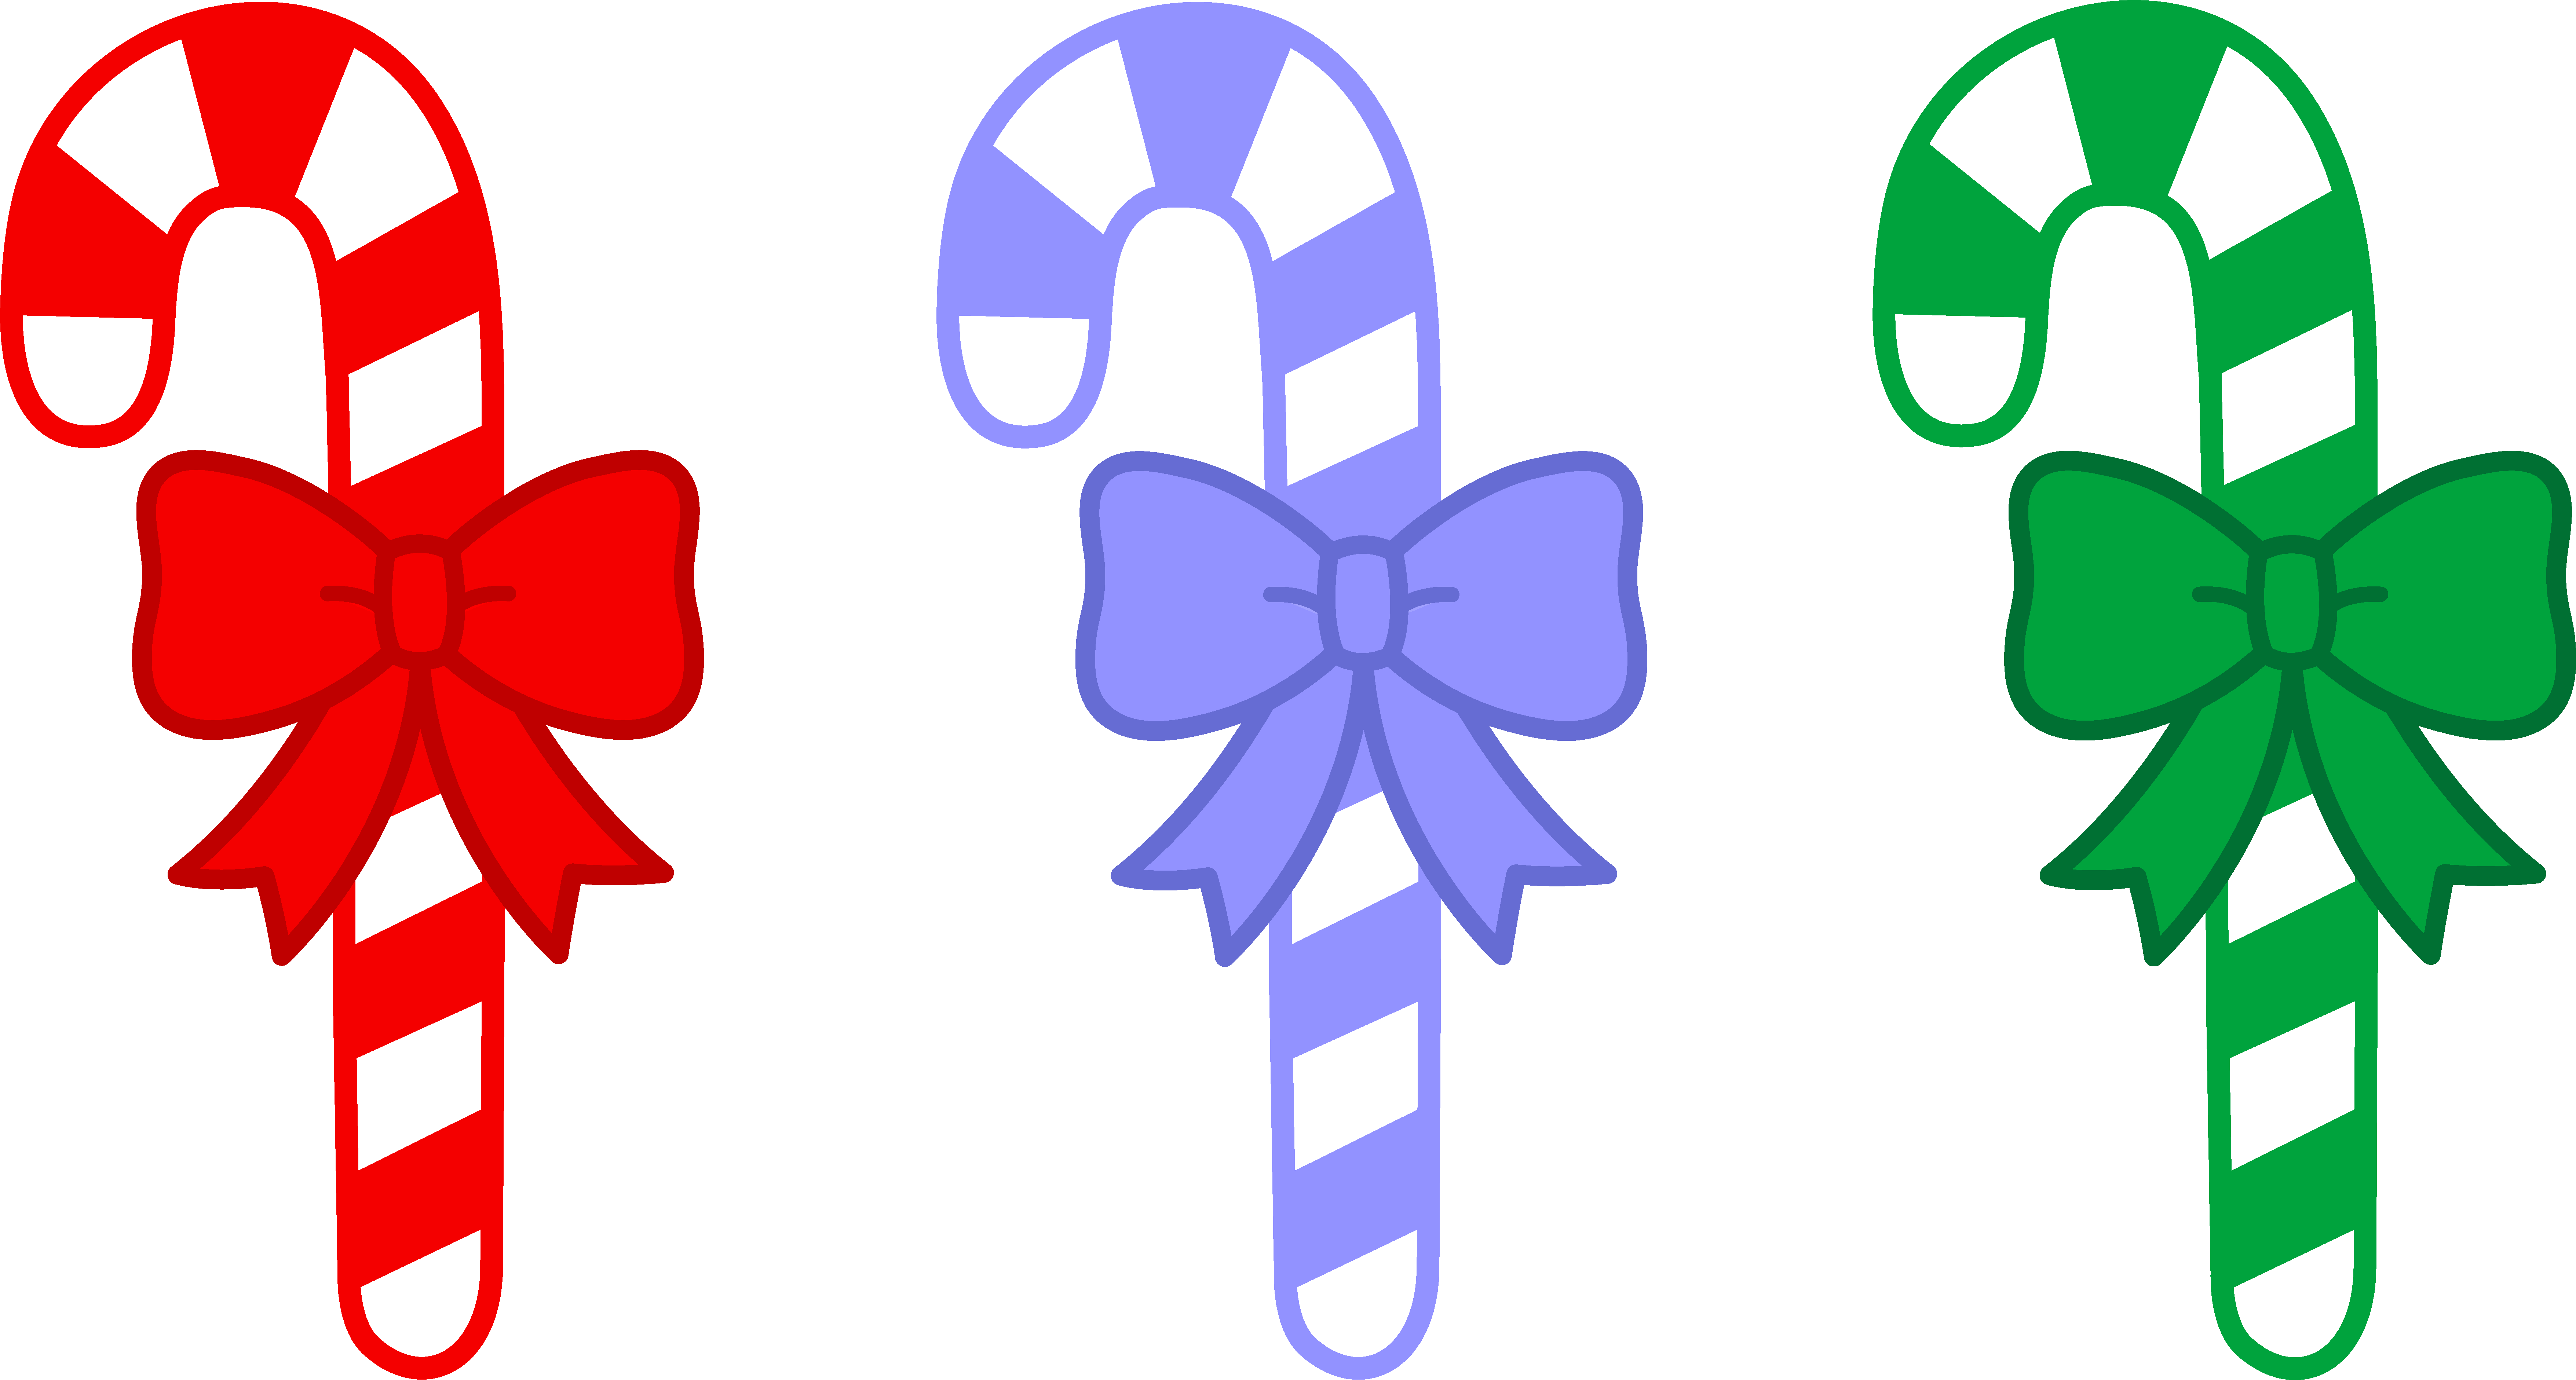 Christmas candy cane clipart. Three Candy Canes With Bows .